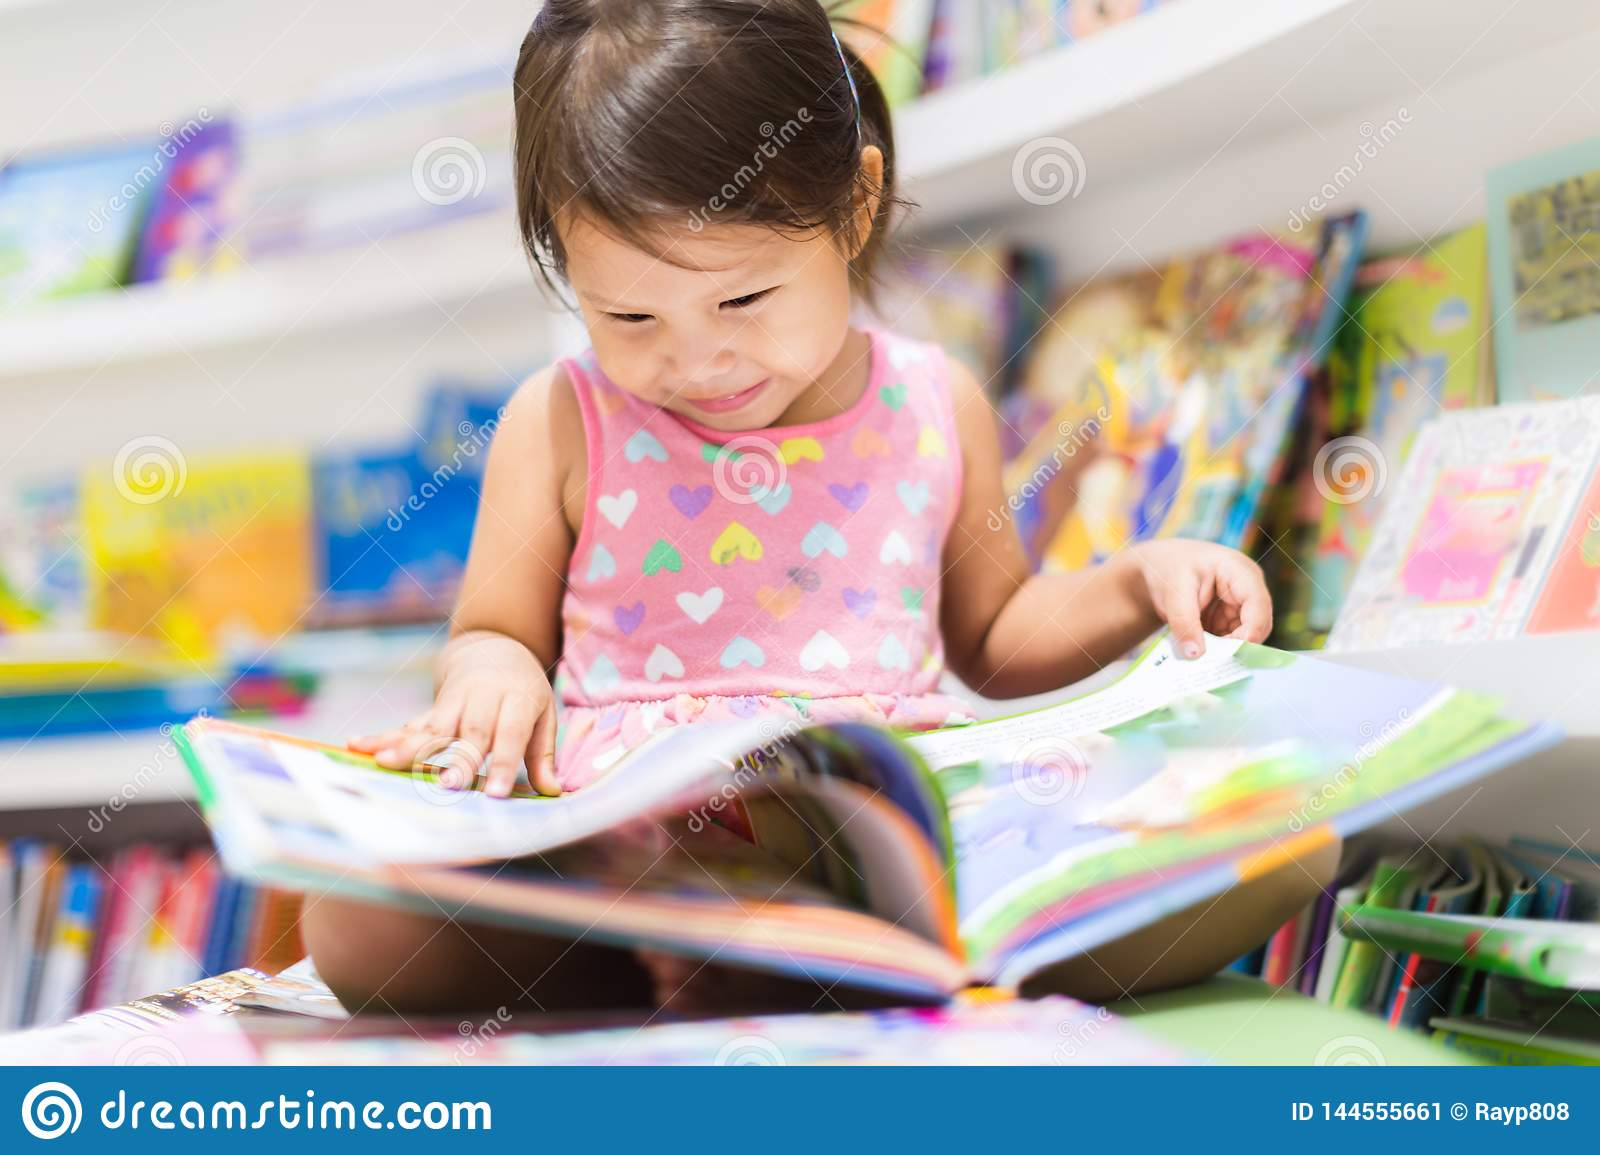 Little girl reading a book. Education